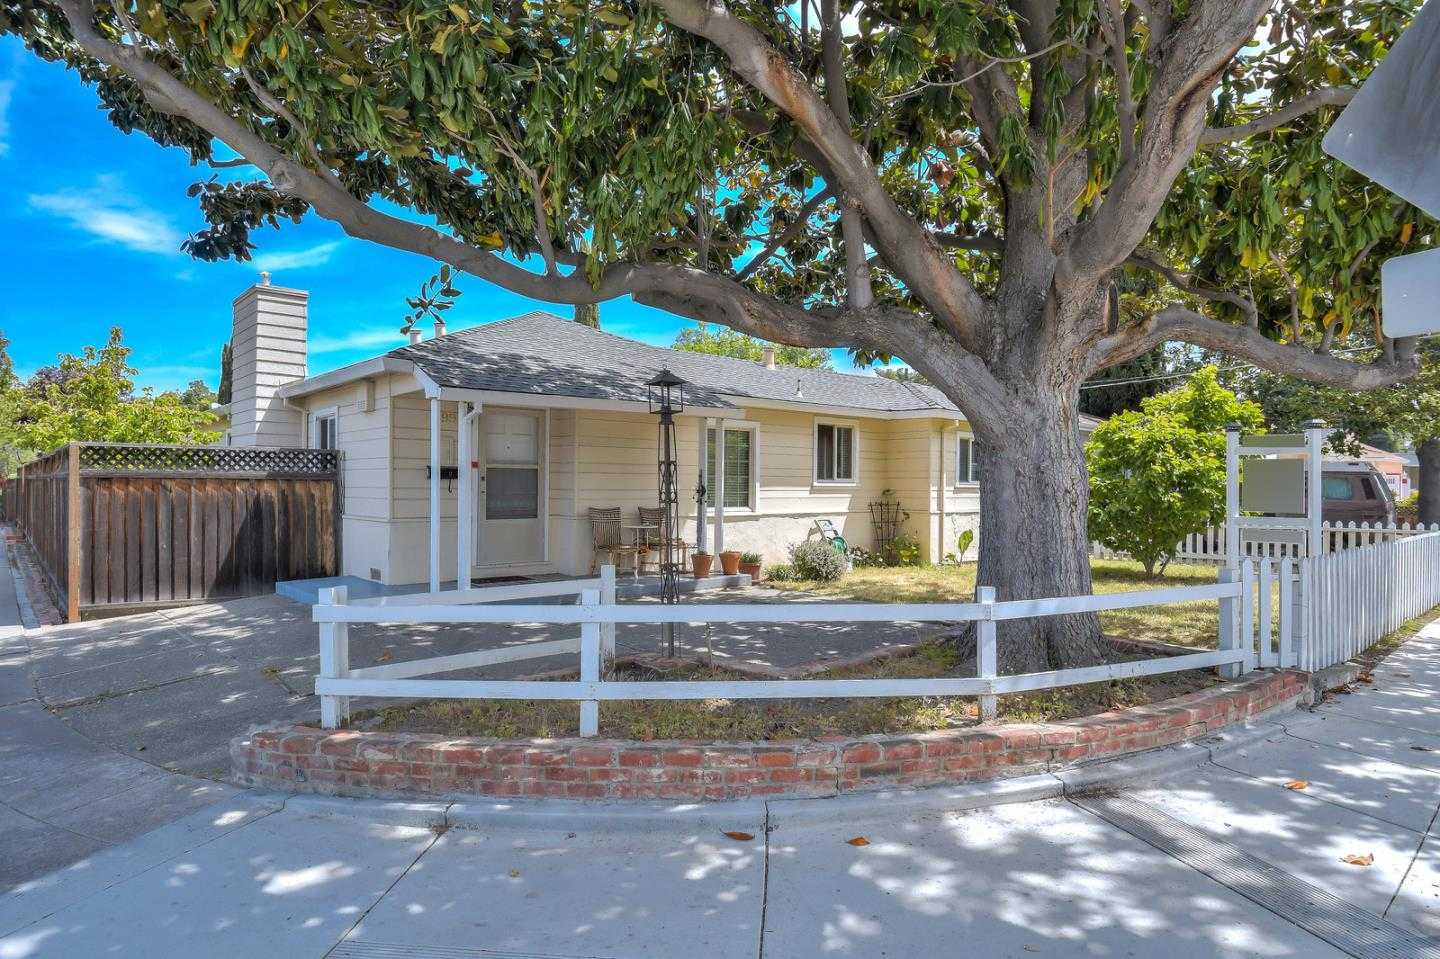 $2,350,000 - 4Br/4Ba -  for Sale in Sunnyvale